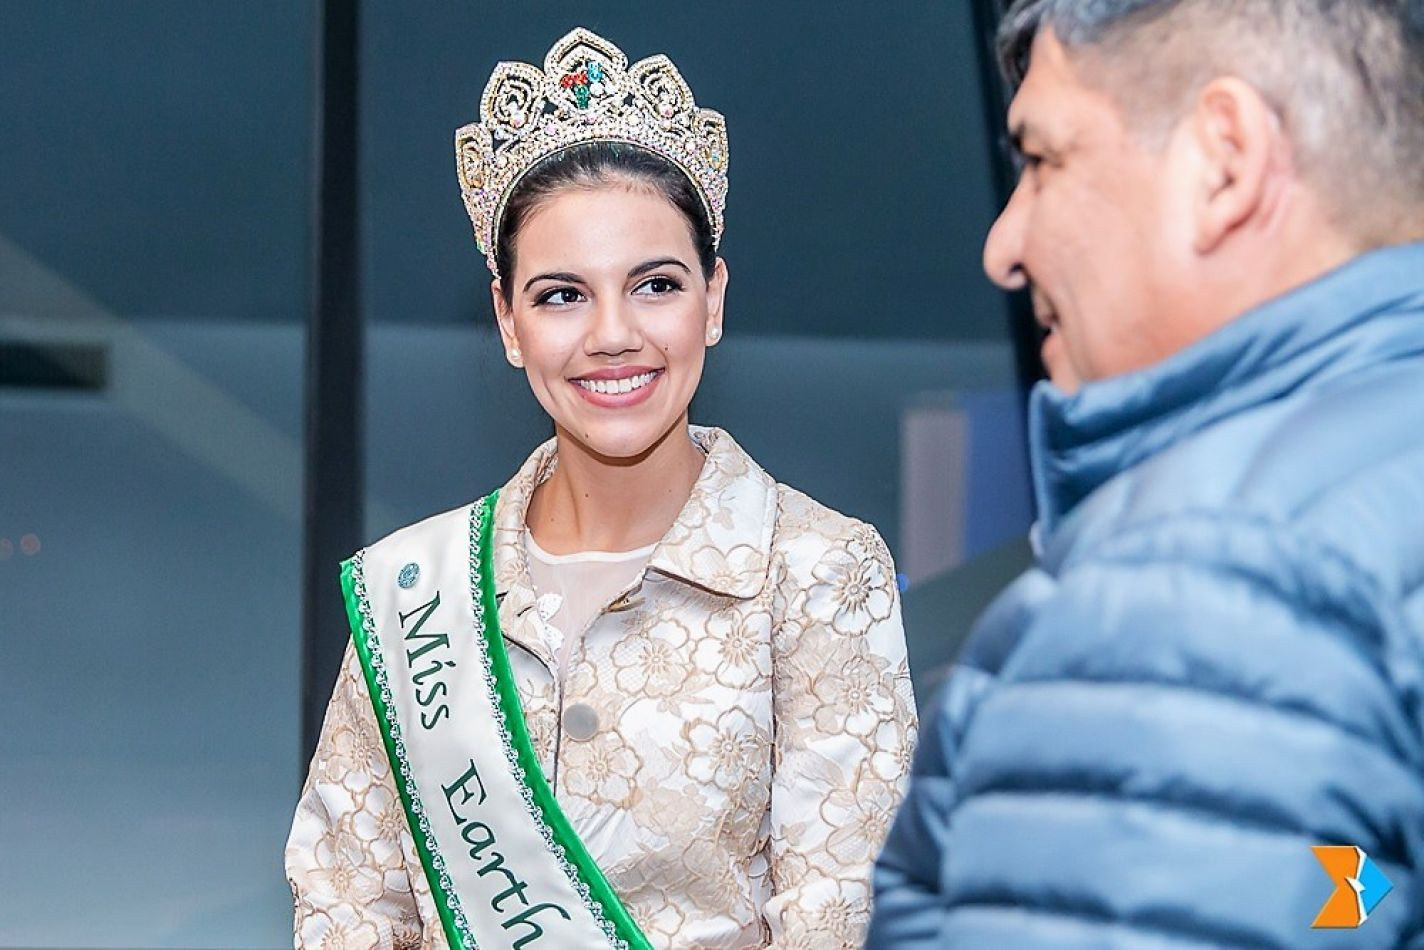 Dolores Cardoso, Miss Earth Argentina.